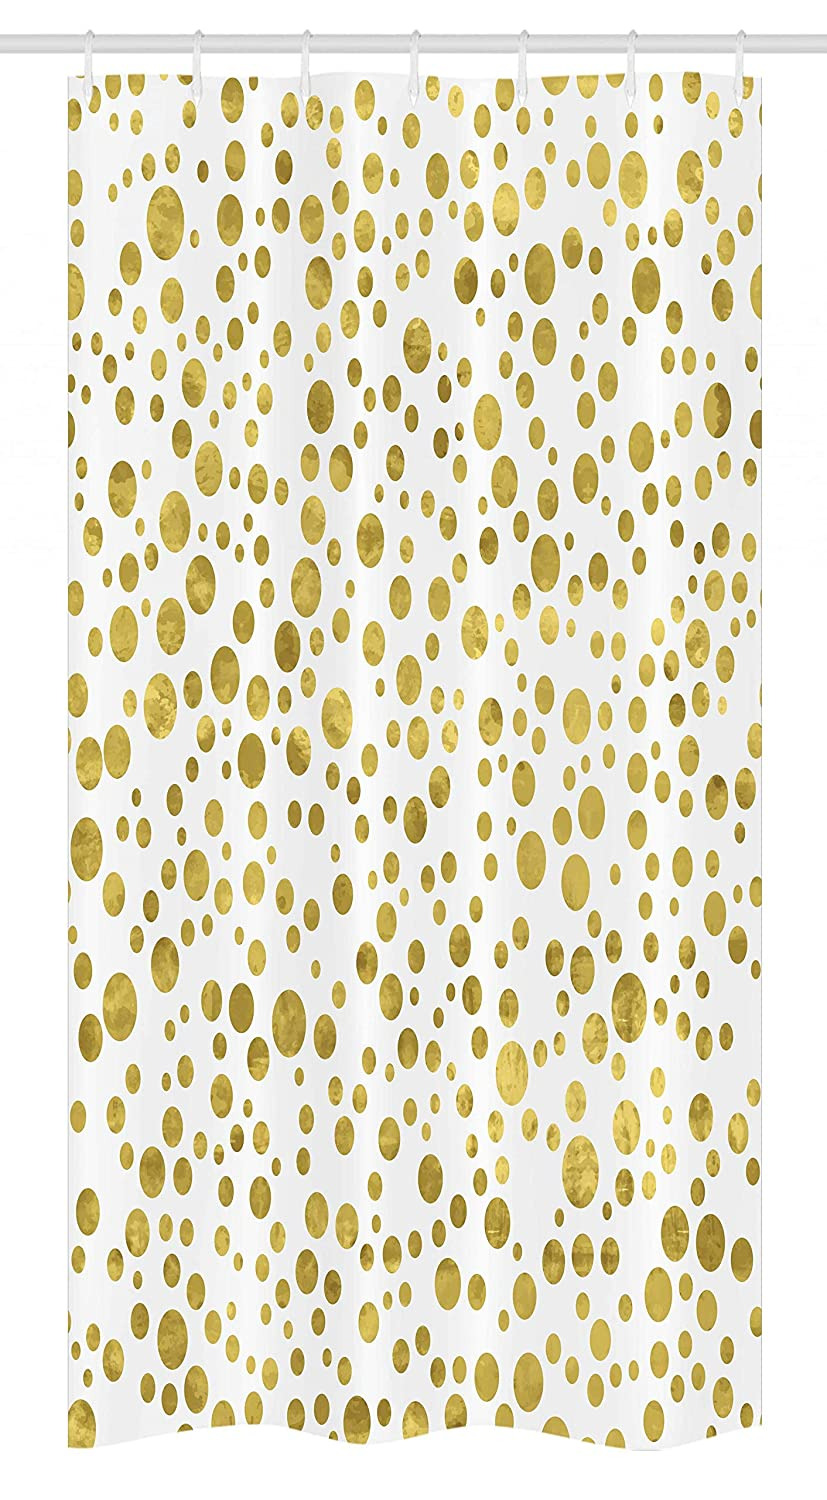 Polka Dot Bathroom Decor Unique Ambesonne Polka Dots Stall Shower Curtain Illustration Of Round Speckled forms In Irregular Layout Artistic Vintage Style Fabric Bathroom Decor Set